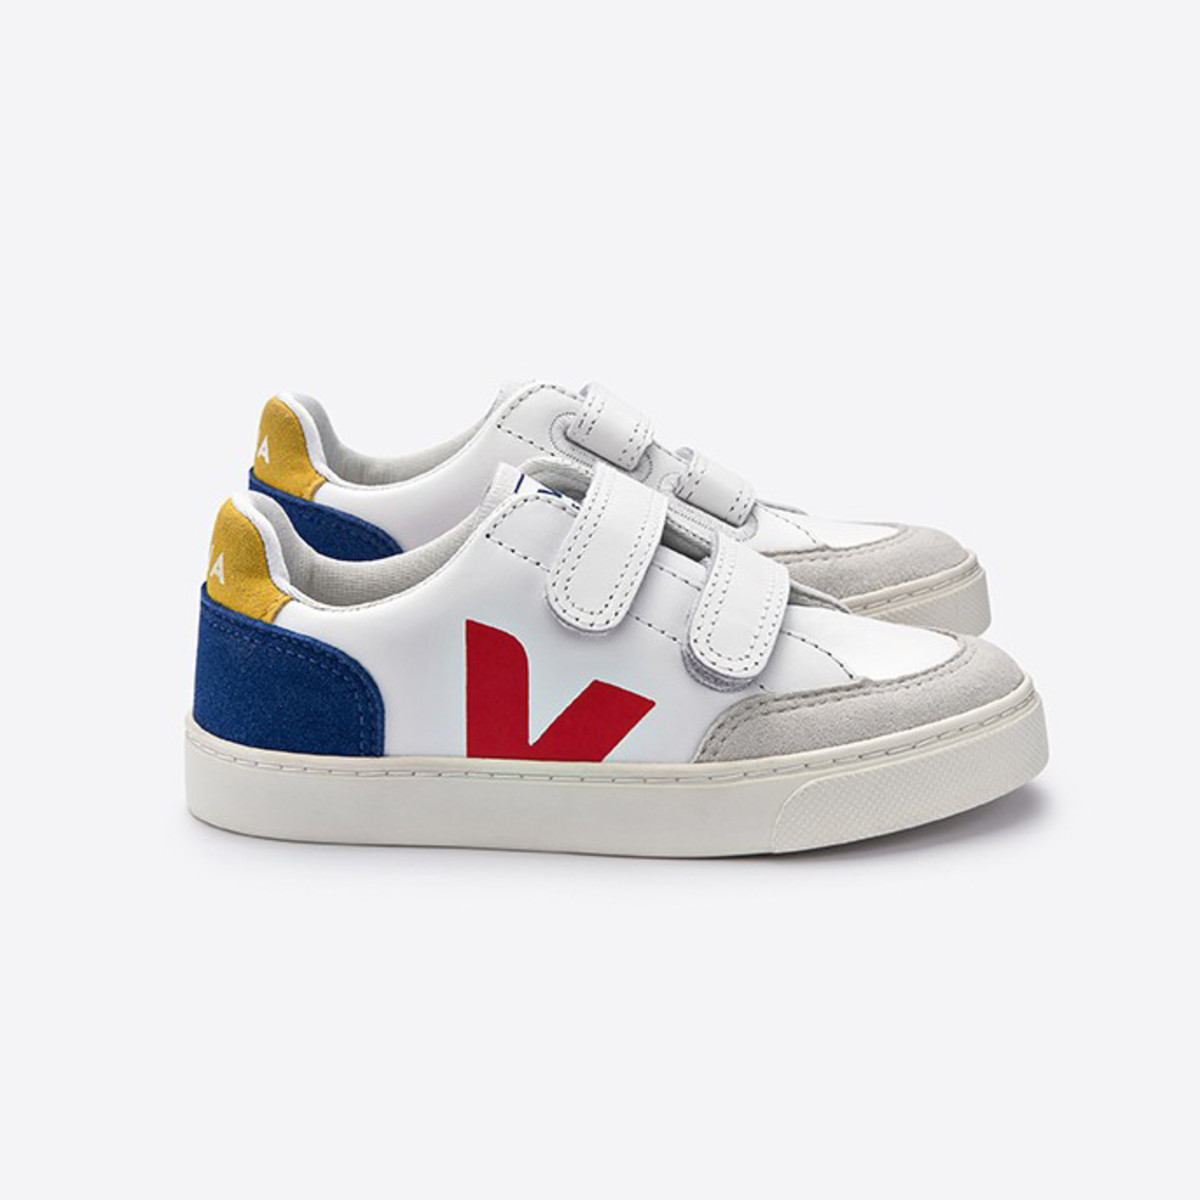 Veja V-12 Multico Indigo Sneakers, $79, available here.